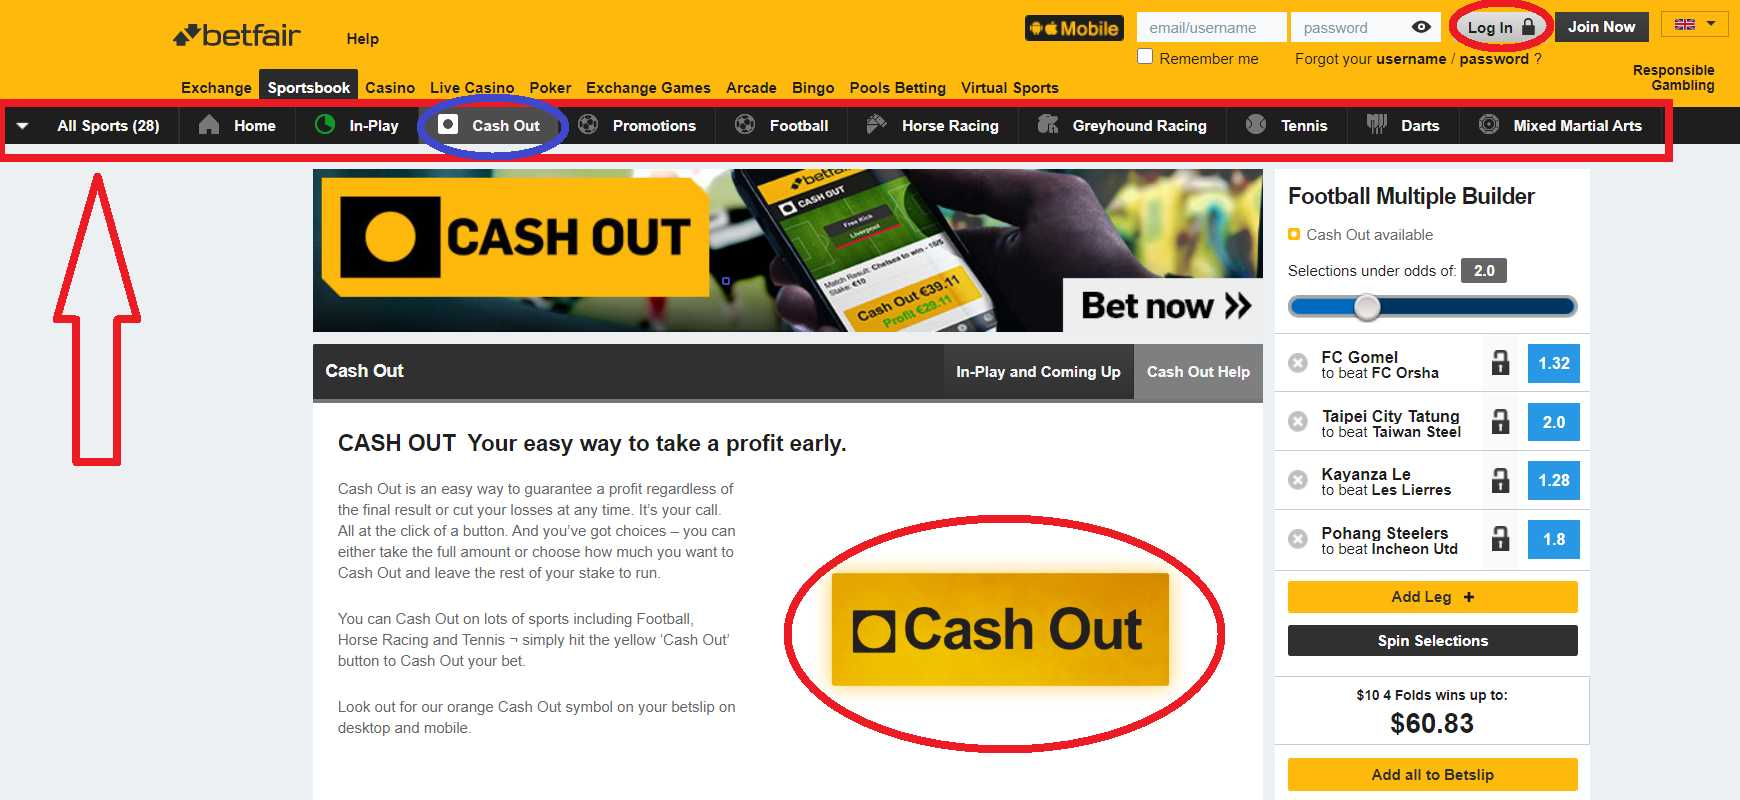 Betfair Mobile Popular Payment Methods